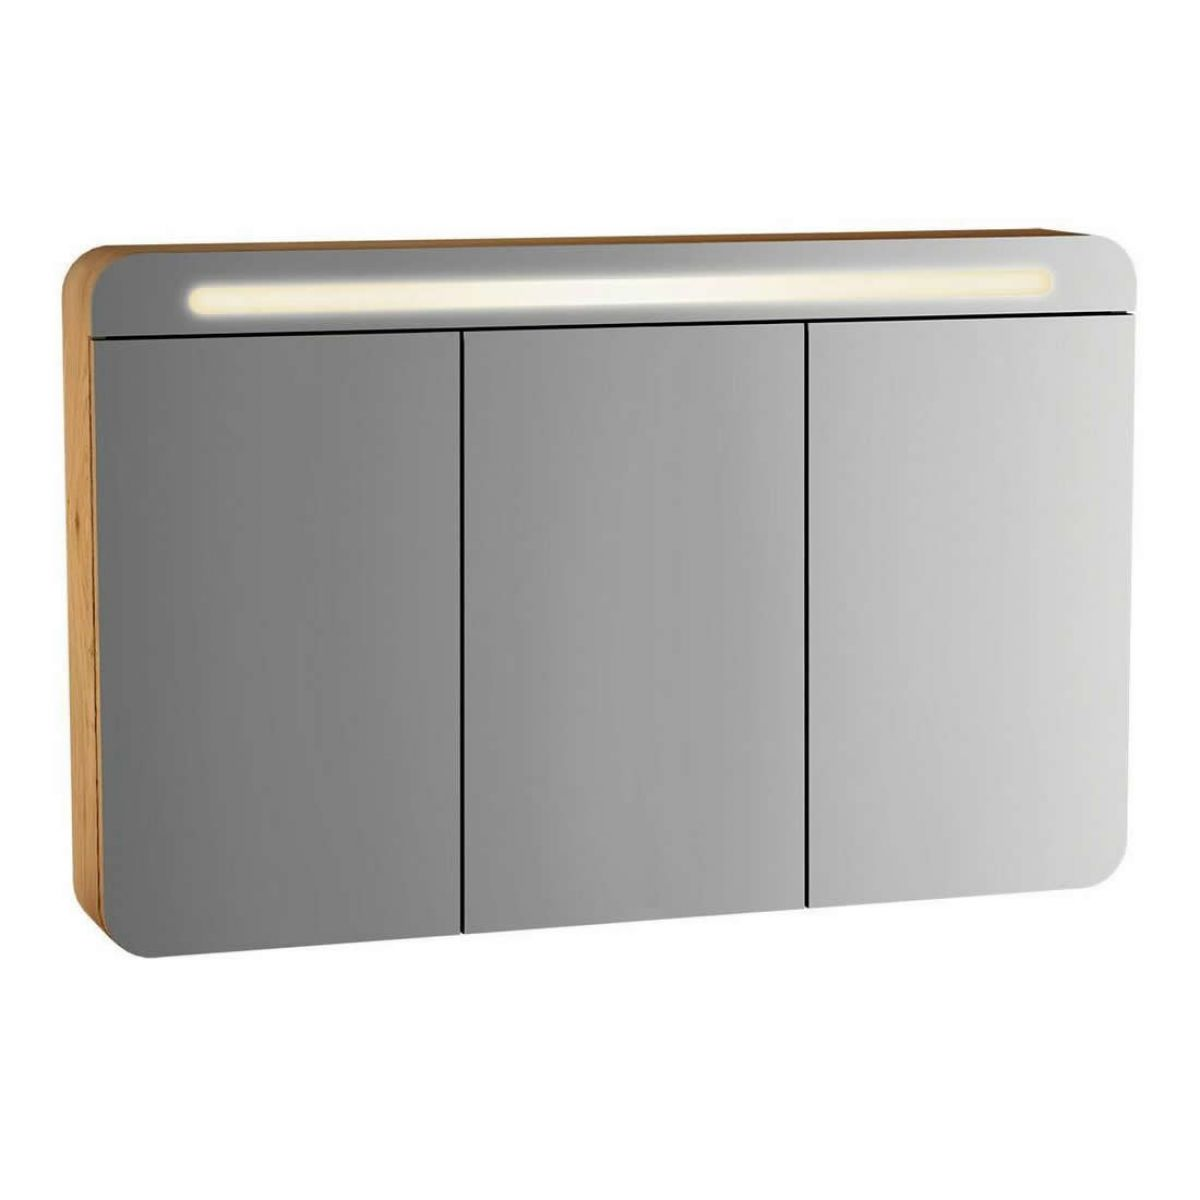 3 Door Mirrored Bathroom Cabinet Vitra Sento 3 Door Illuminated Mirror Cabinet Uk Bathrooms